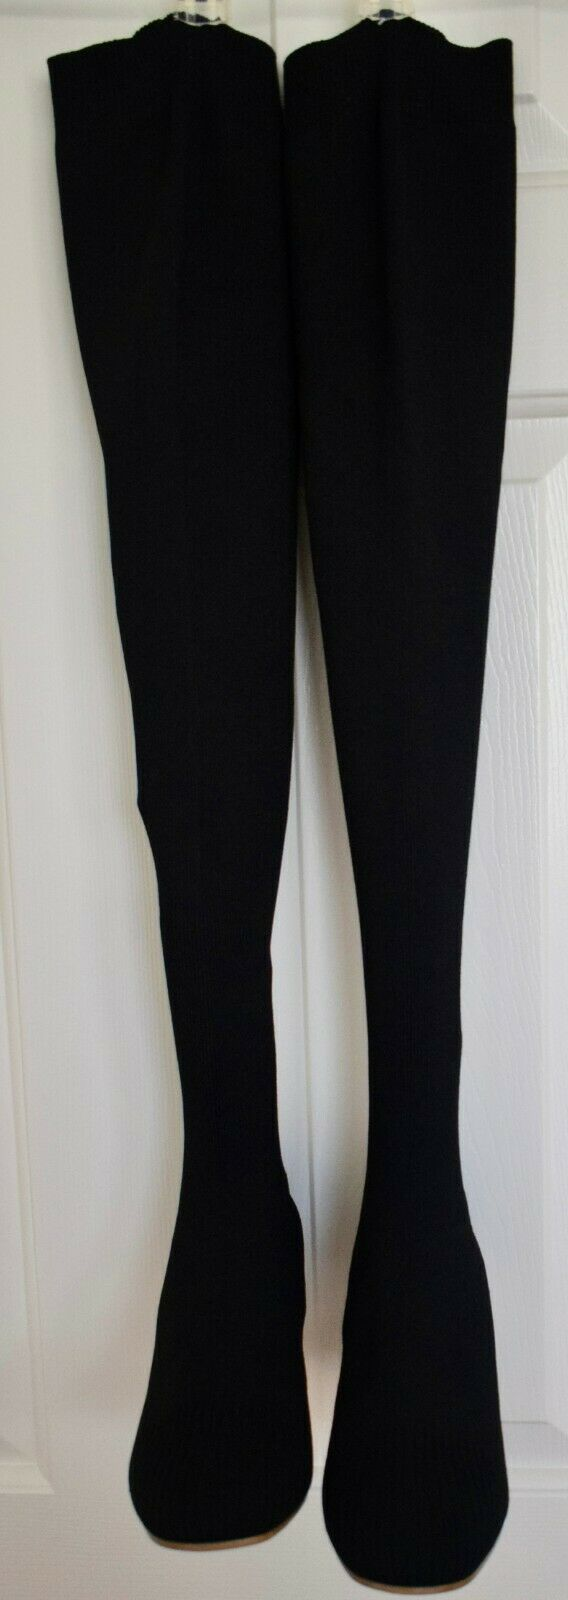 Proenza Schouler Lamy Knit Over-The-Knee Boots with Metal Heels, Black, Size 7.5